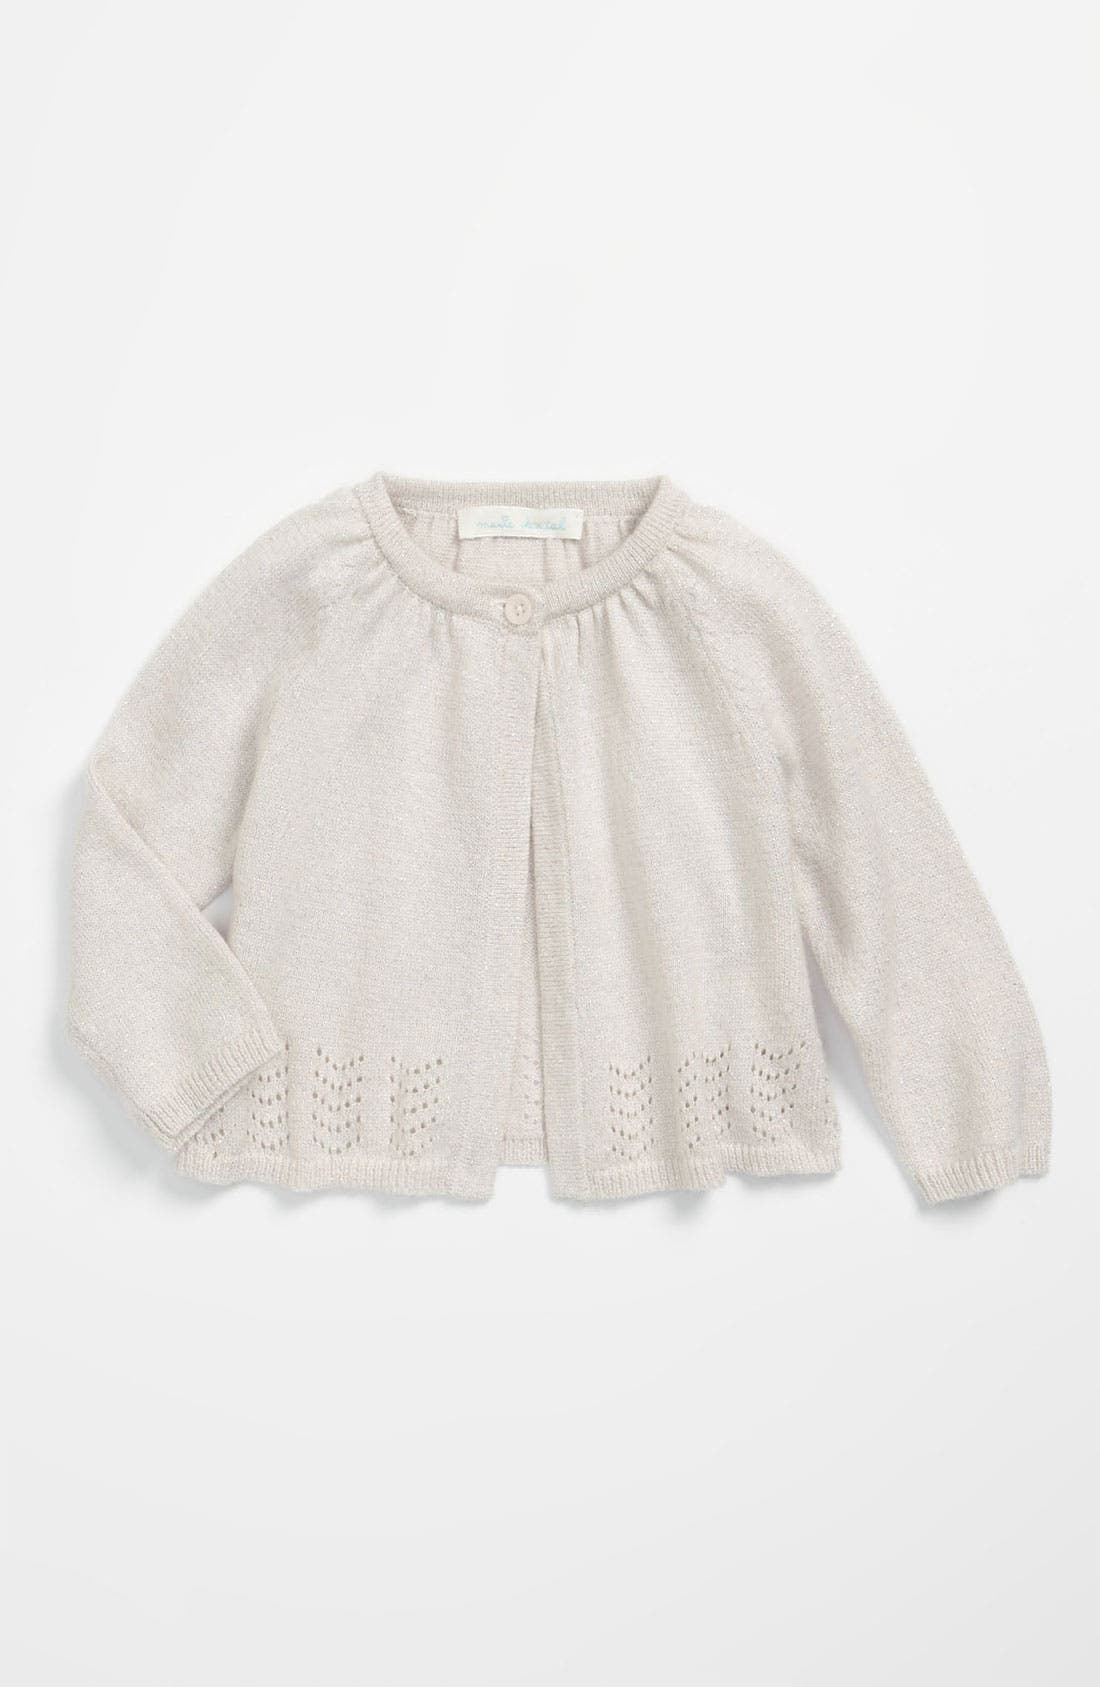 Main Image - Marie-Chantal 'Baby' Swing Cardigan (Infant)